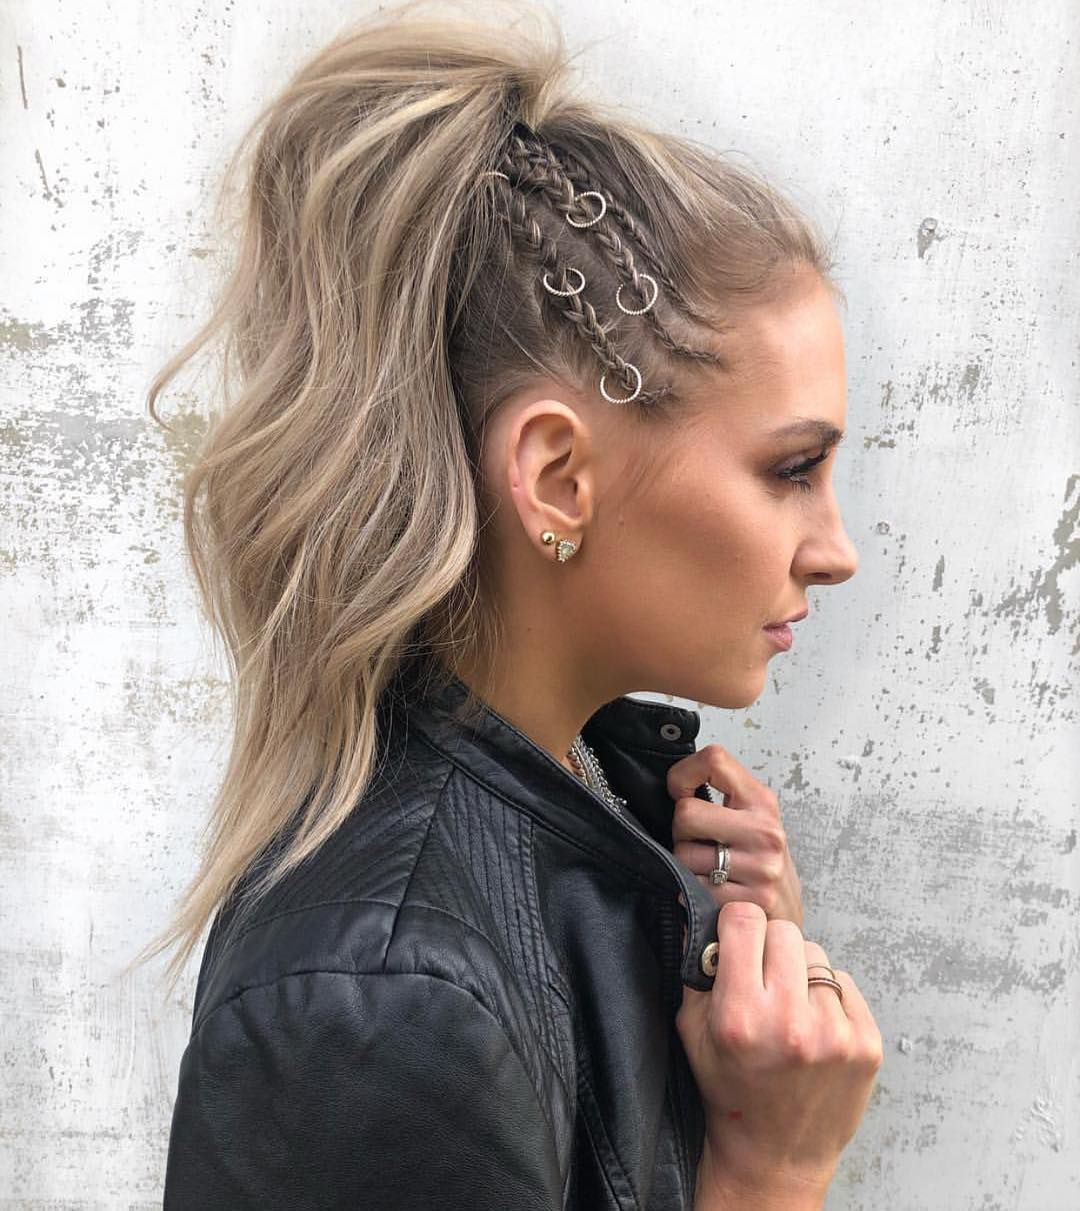 High Pony Club By Shelbyweatherholtzhair Ringaccessories Hairaccessories Highponytail Hair Styles Rock Hairstyles Weekend Hair